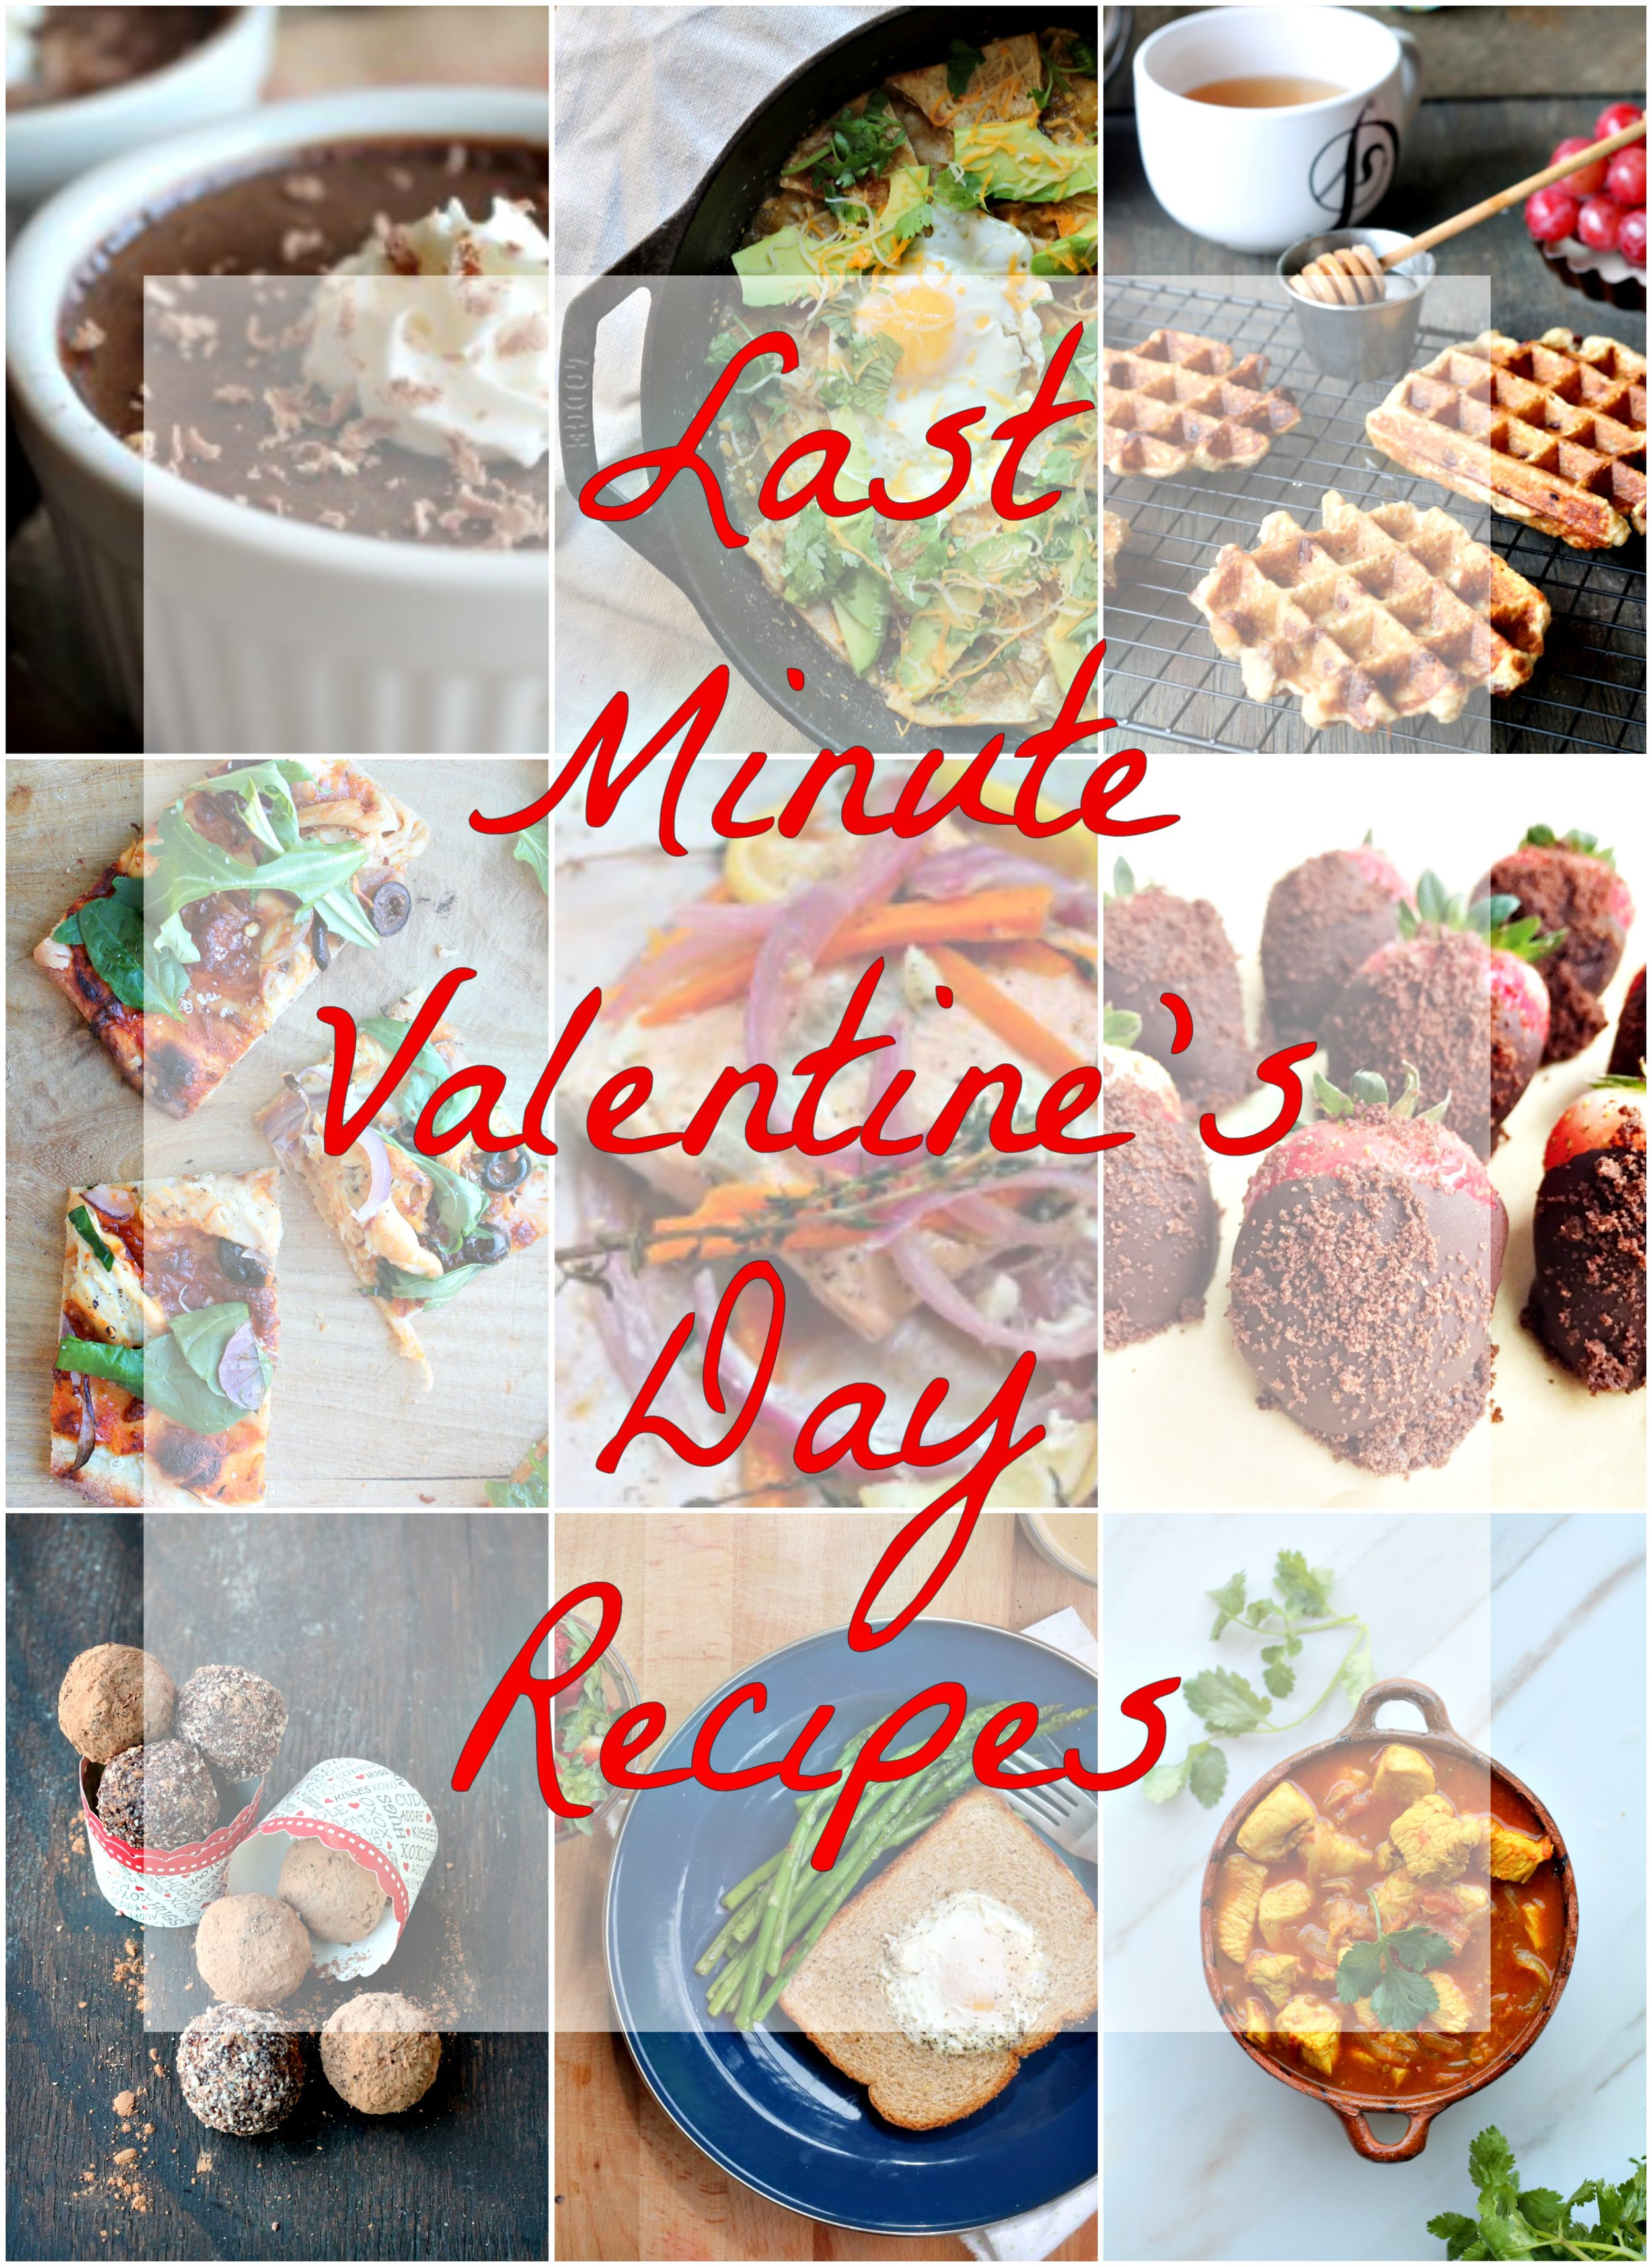 I hope you will find inspiration from Last Minute Valentine's Day Recipes as I have covered everything from your brunching needs to recipes that will satisfy your sweet tooth.